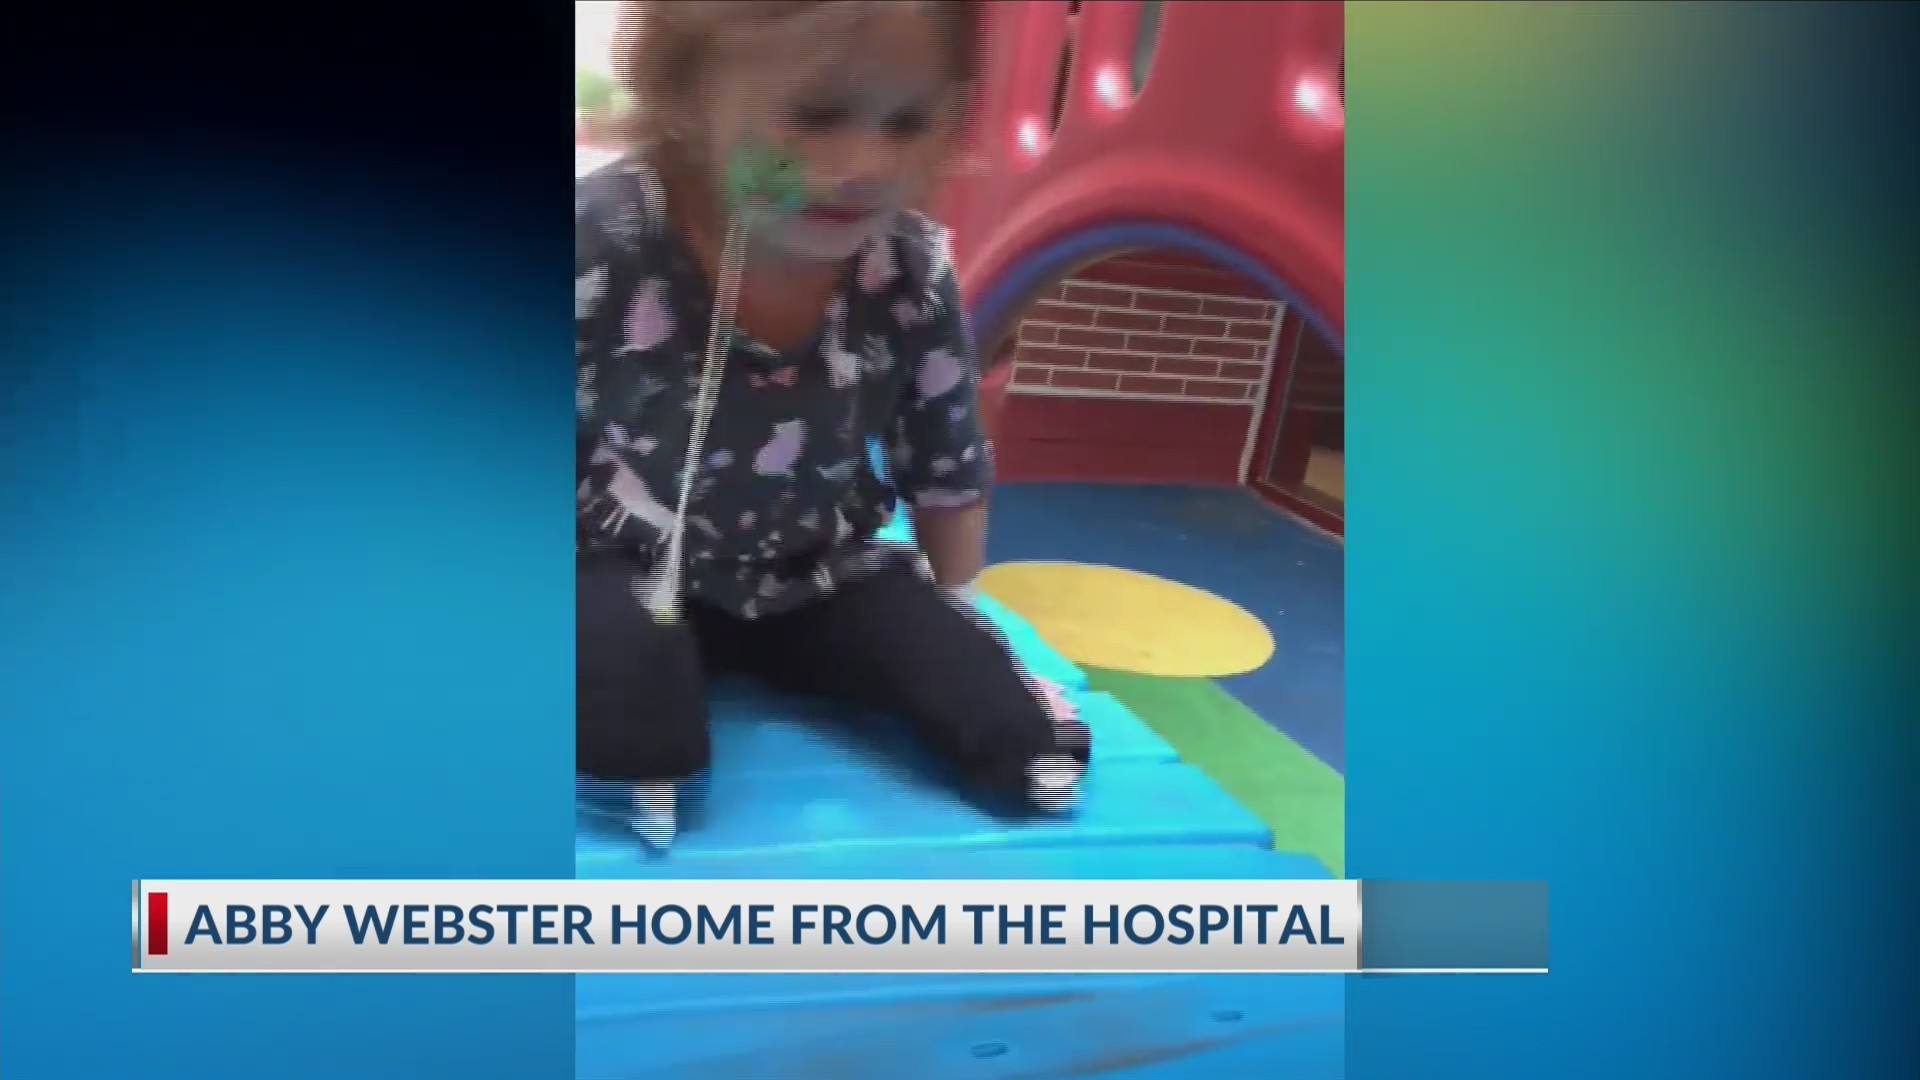 Abby Webster home from the hospital after receiving surgery